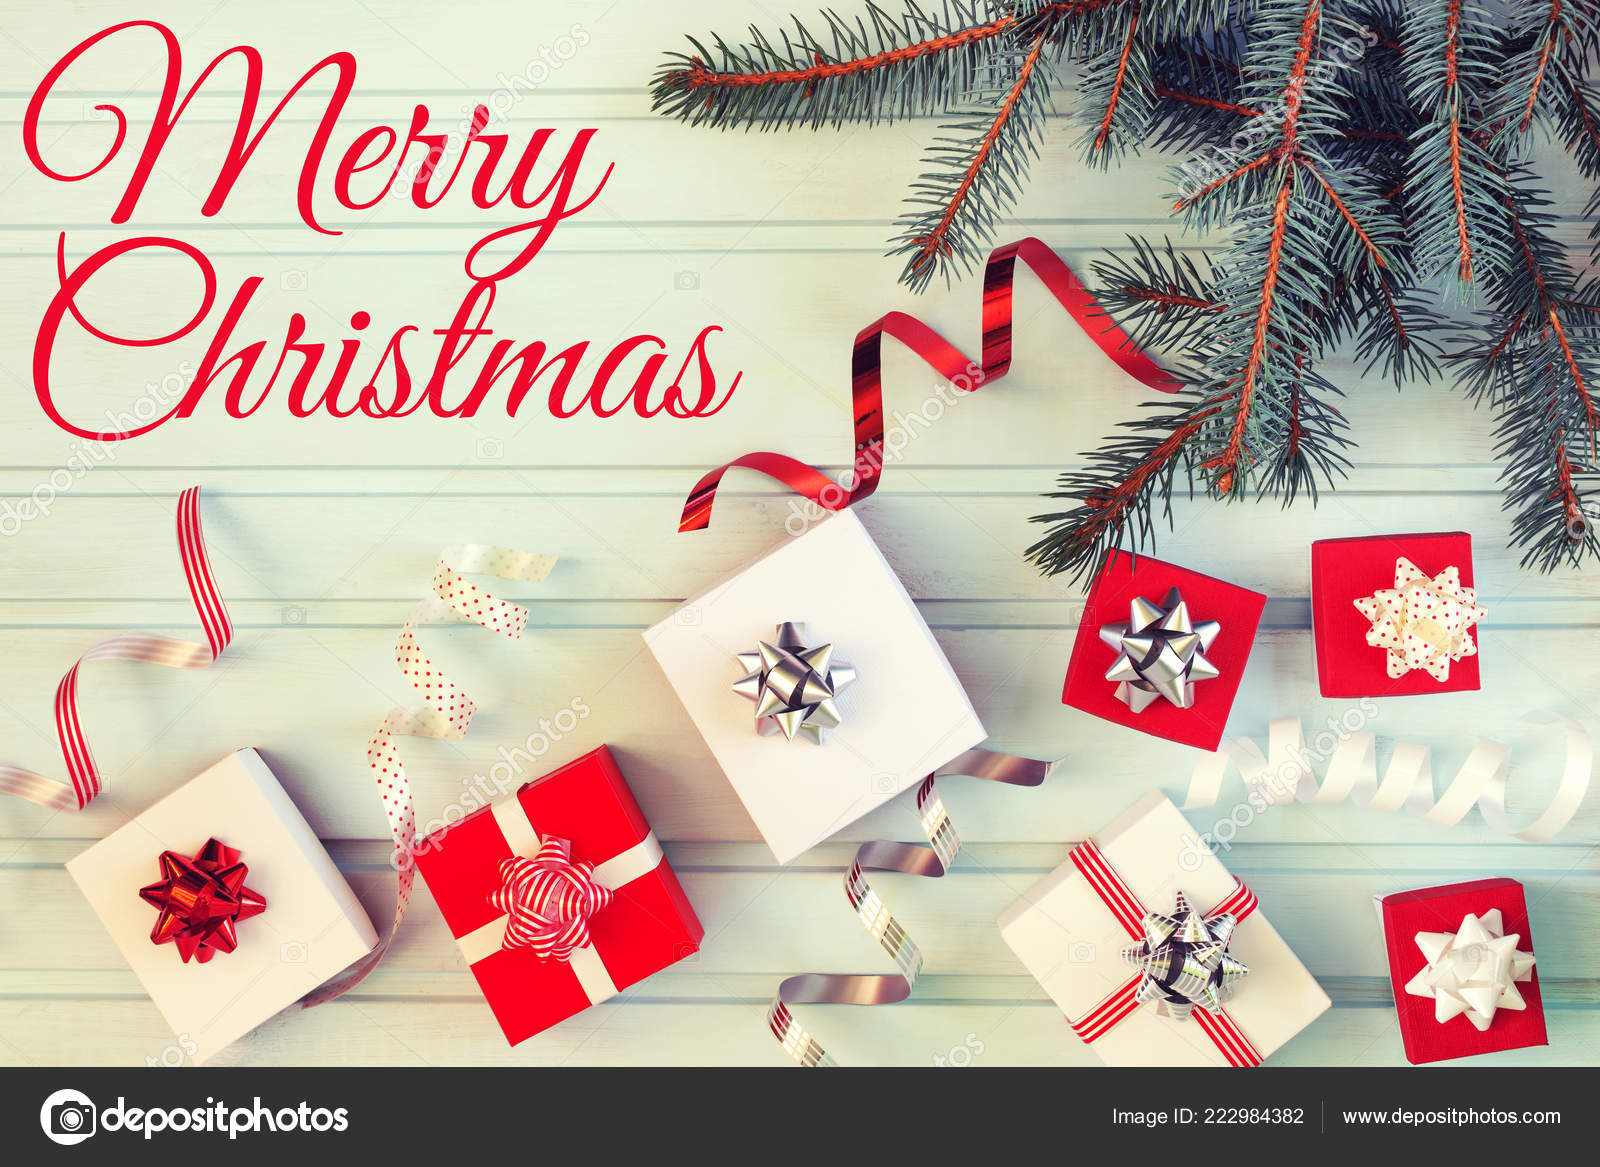 Merry Christmas Greeting Card — Stock Photo © Switch-84 #222984382